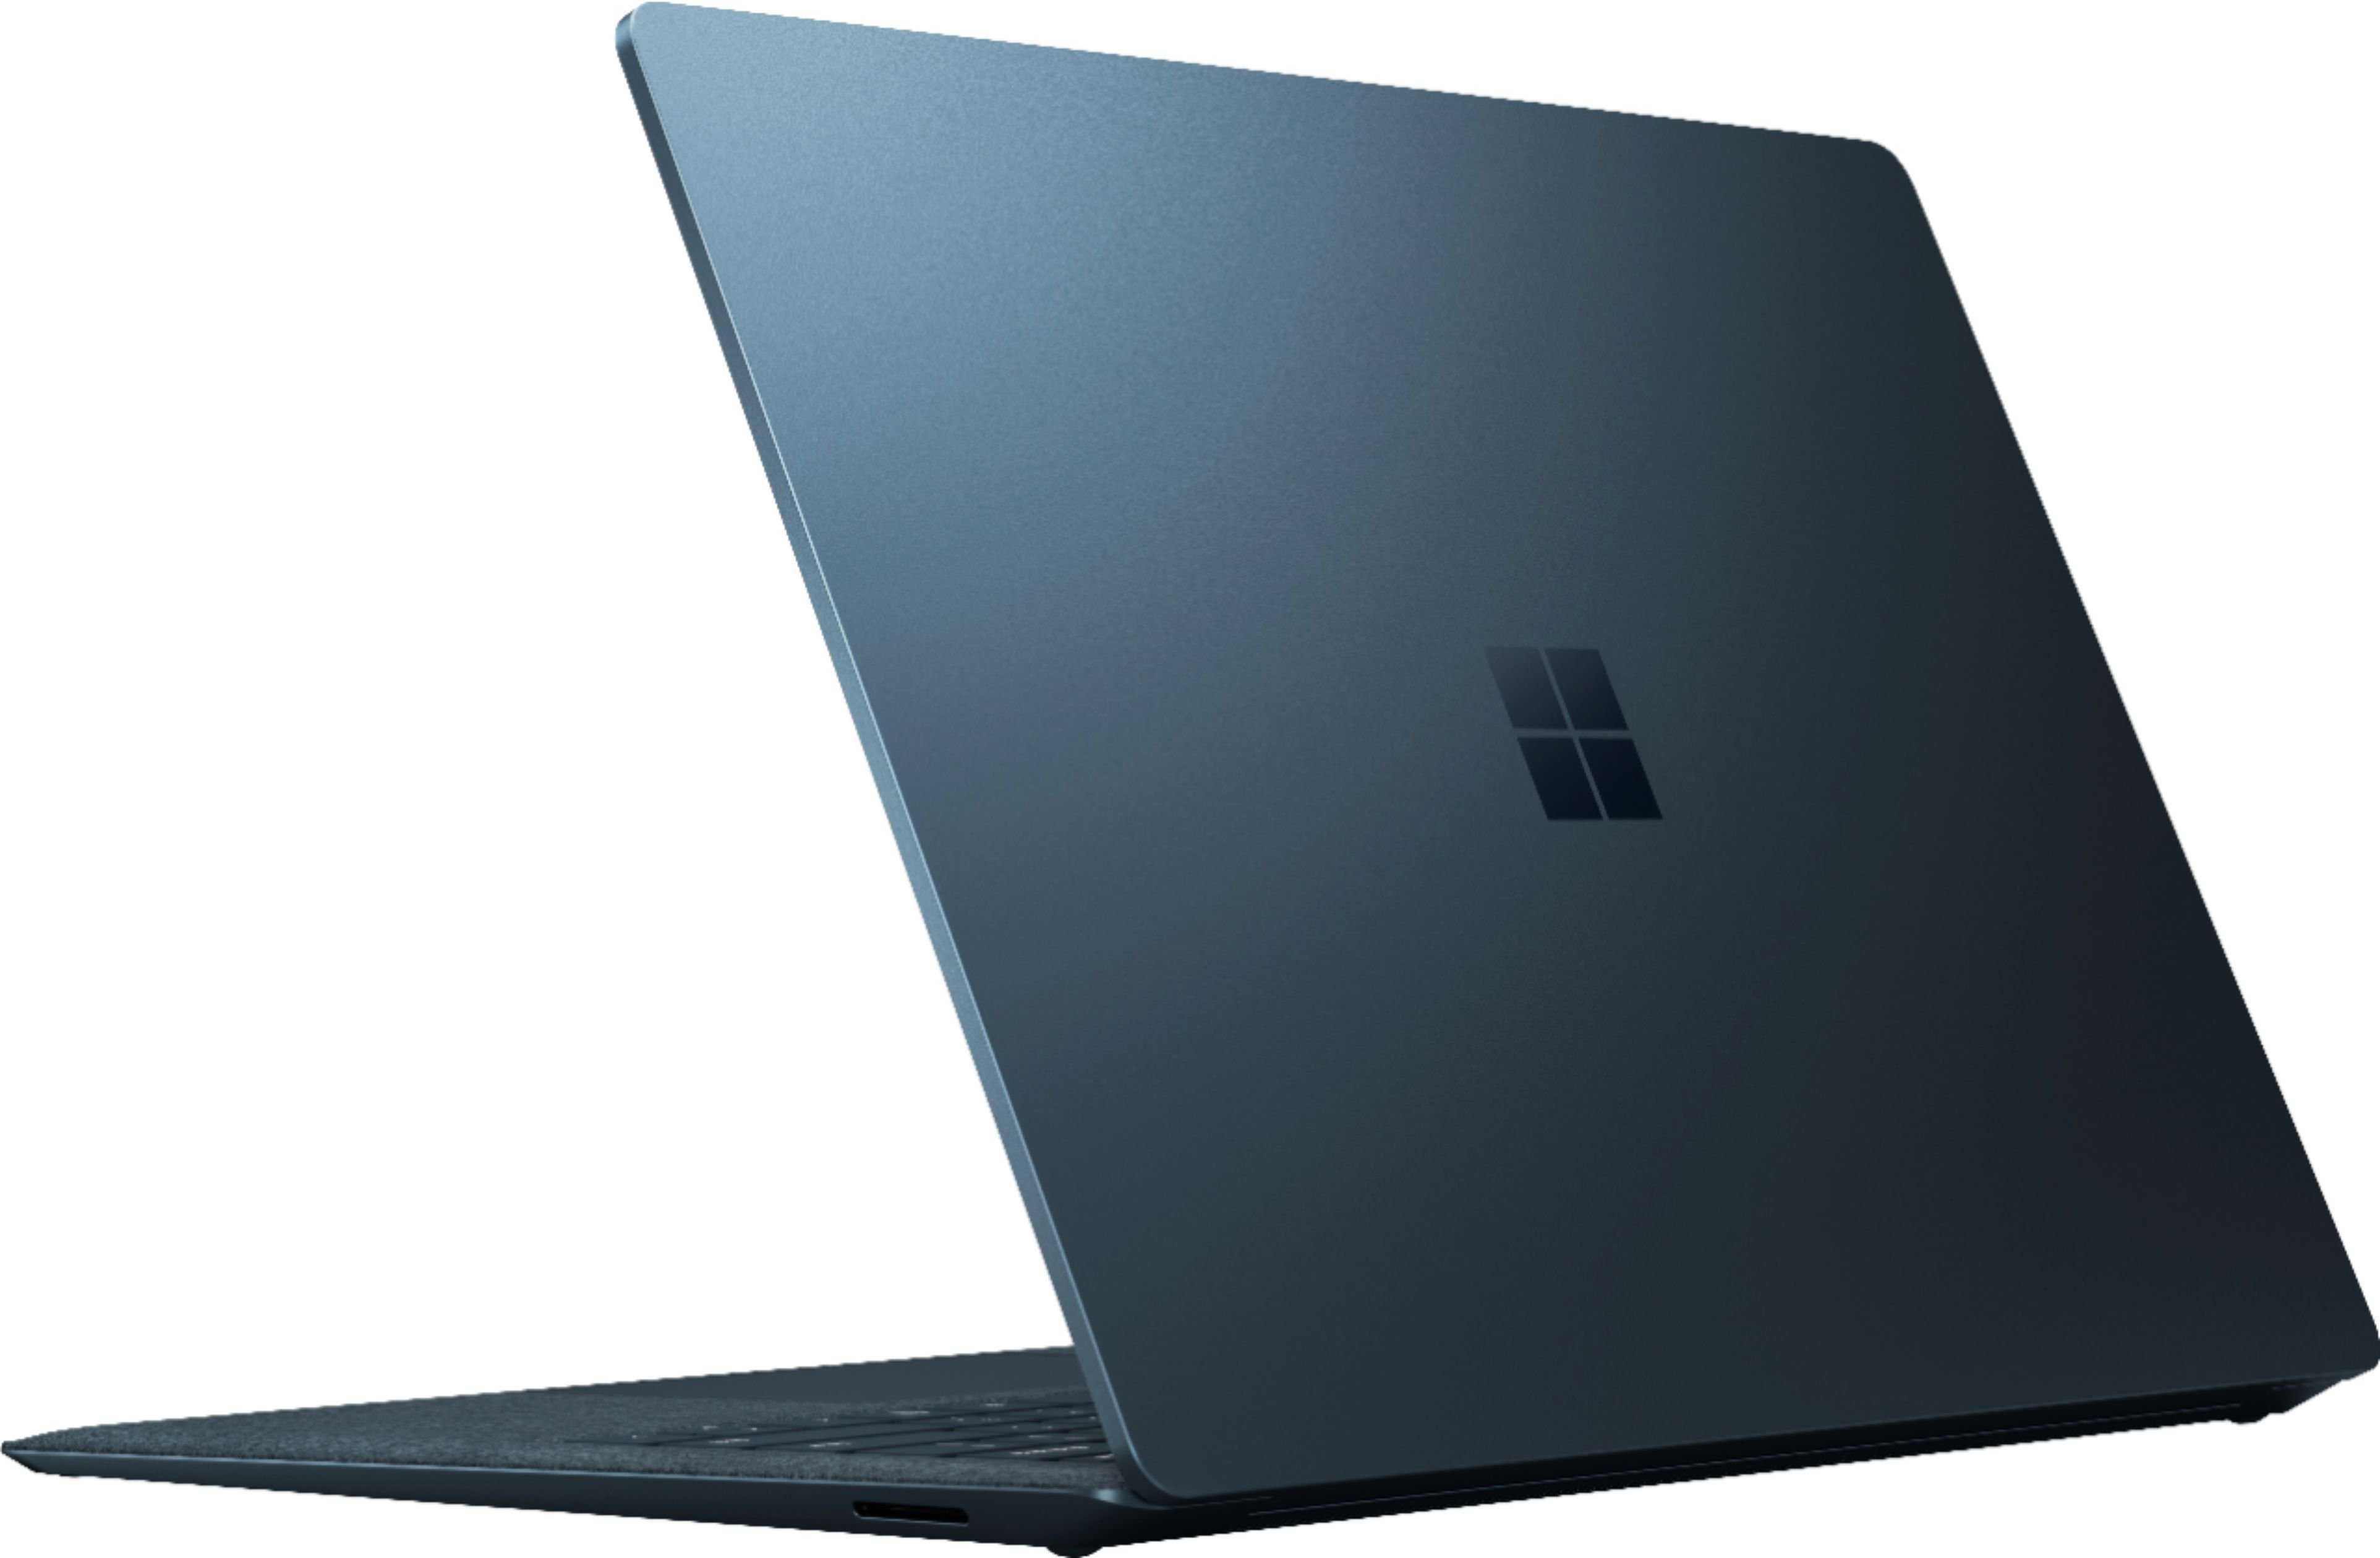 more leaked surface laptop 3 pictures show the 3 2 ratio